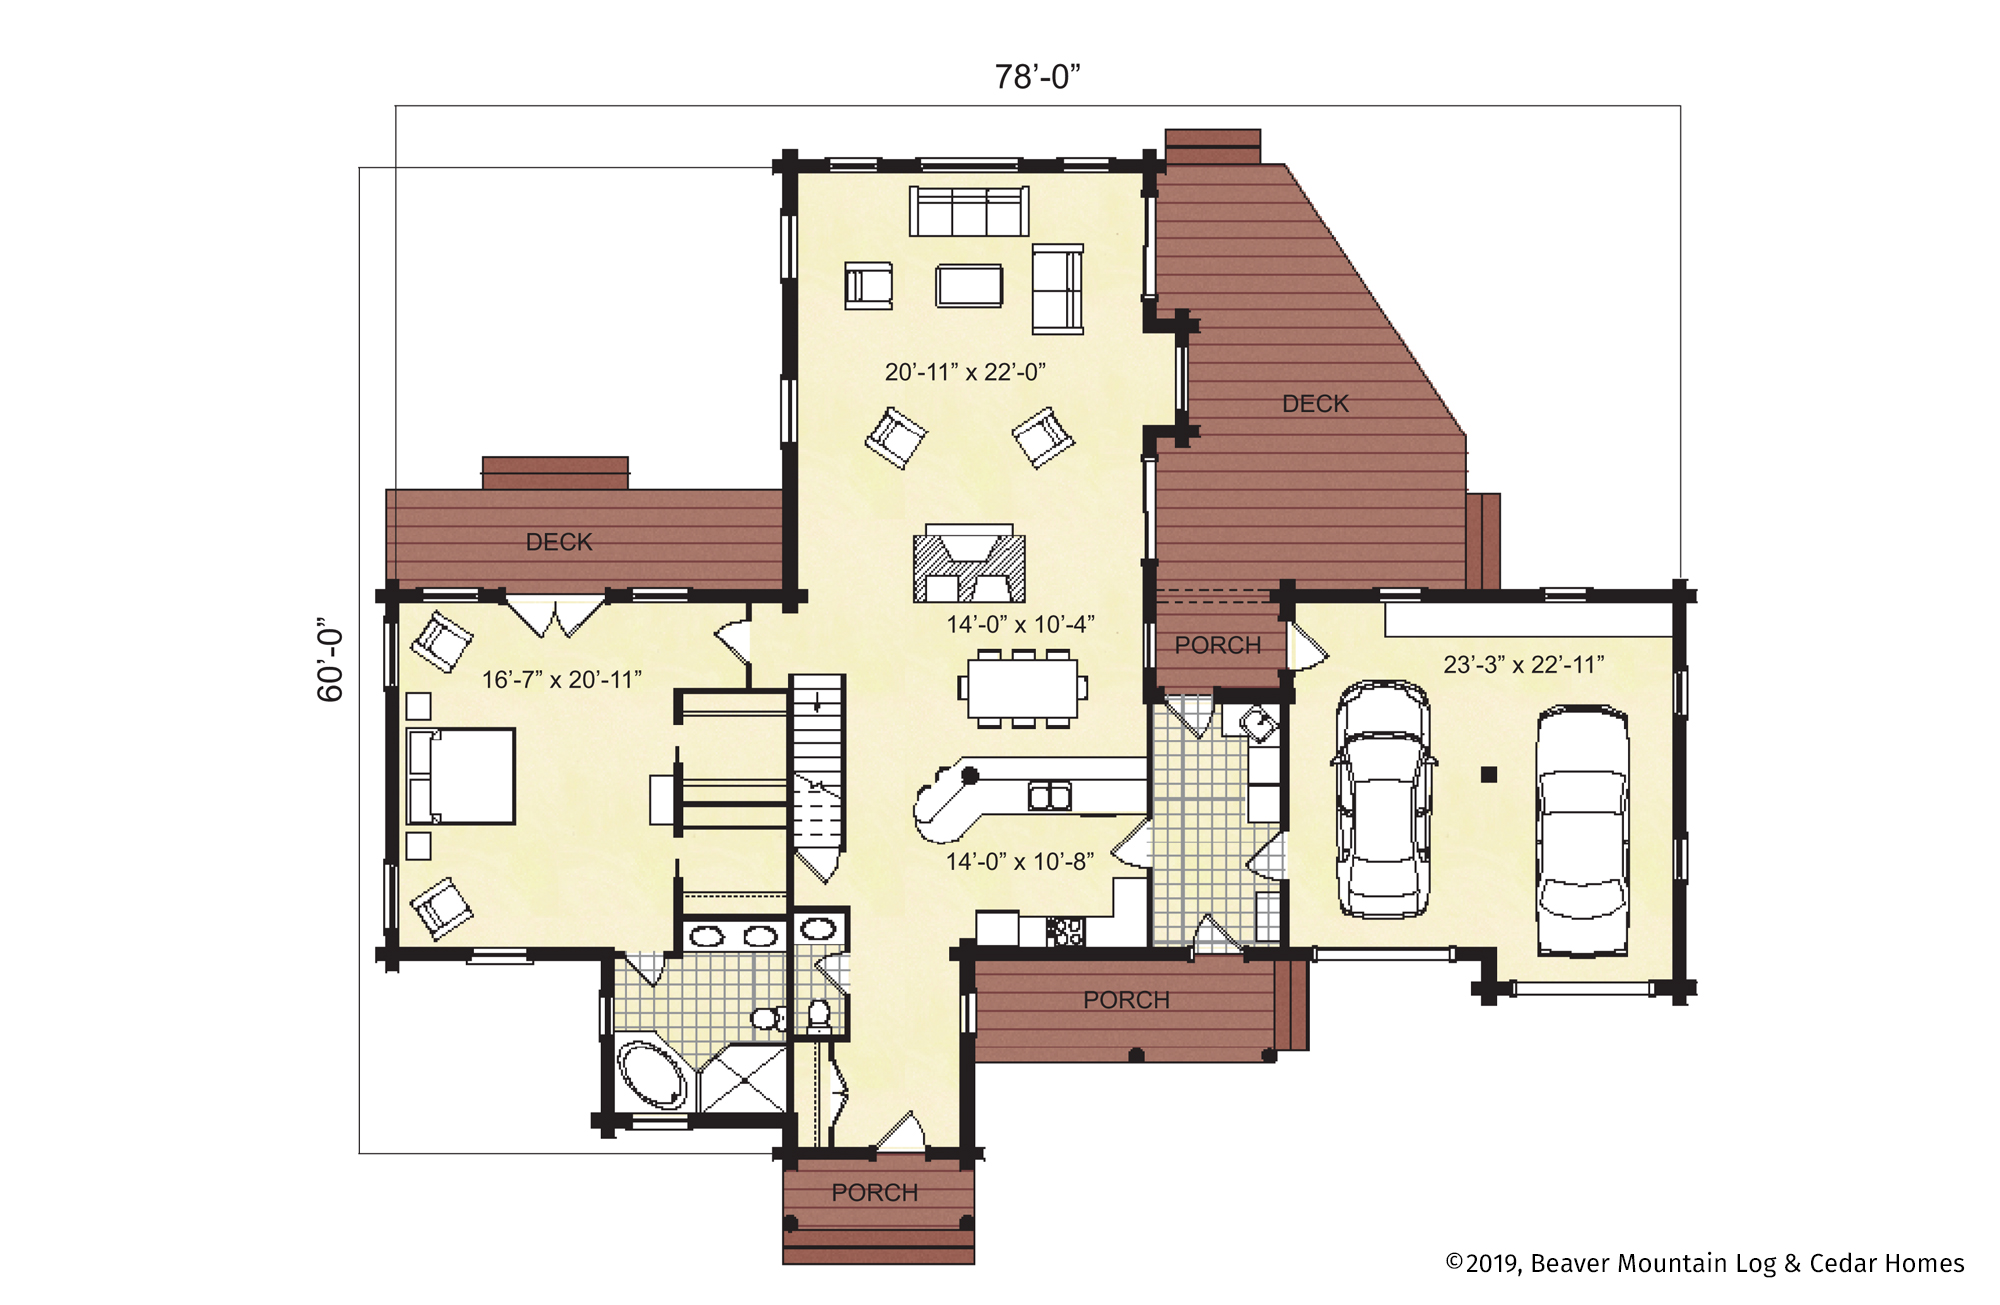 Beaver Mountain Log Homes Saratoga Springs first floor plan